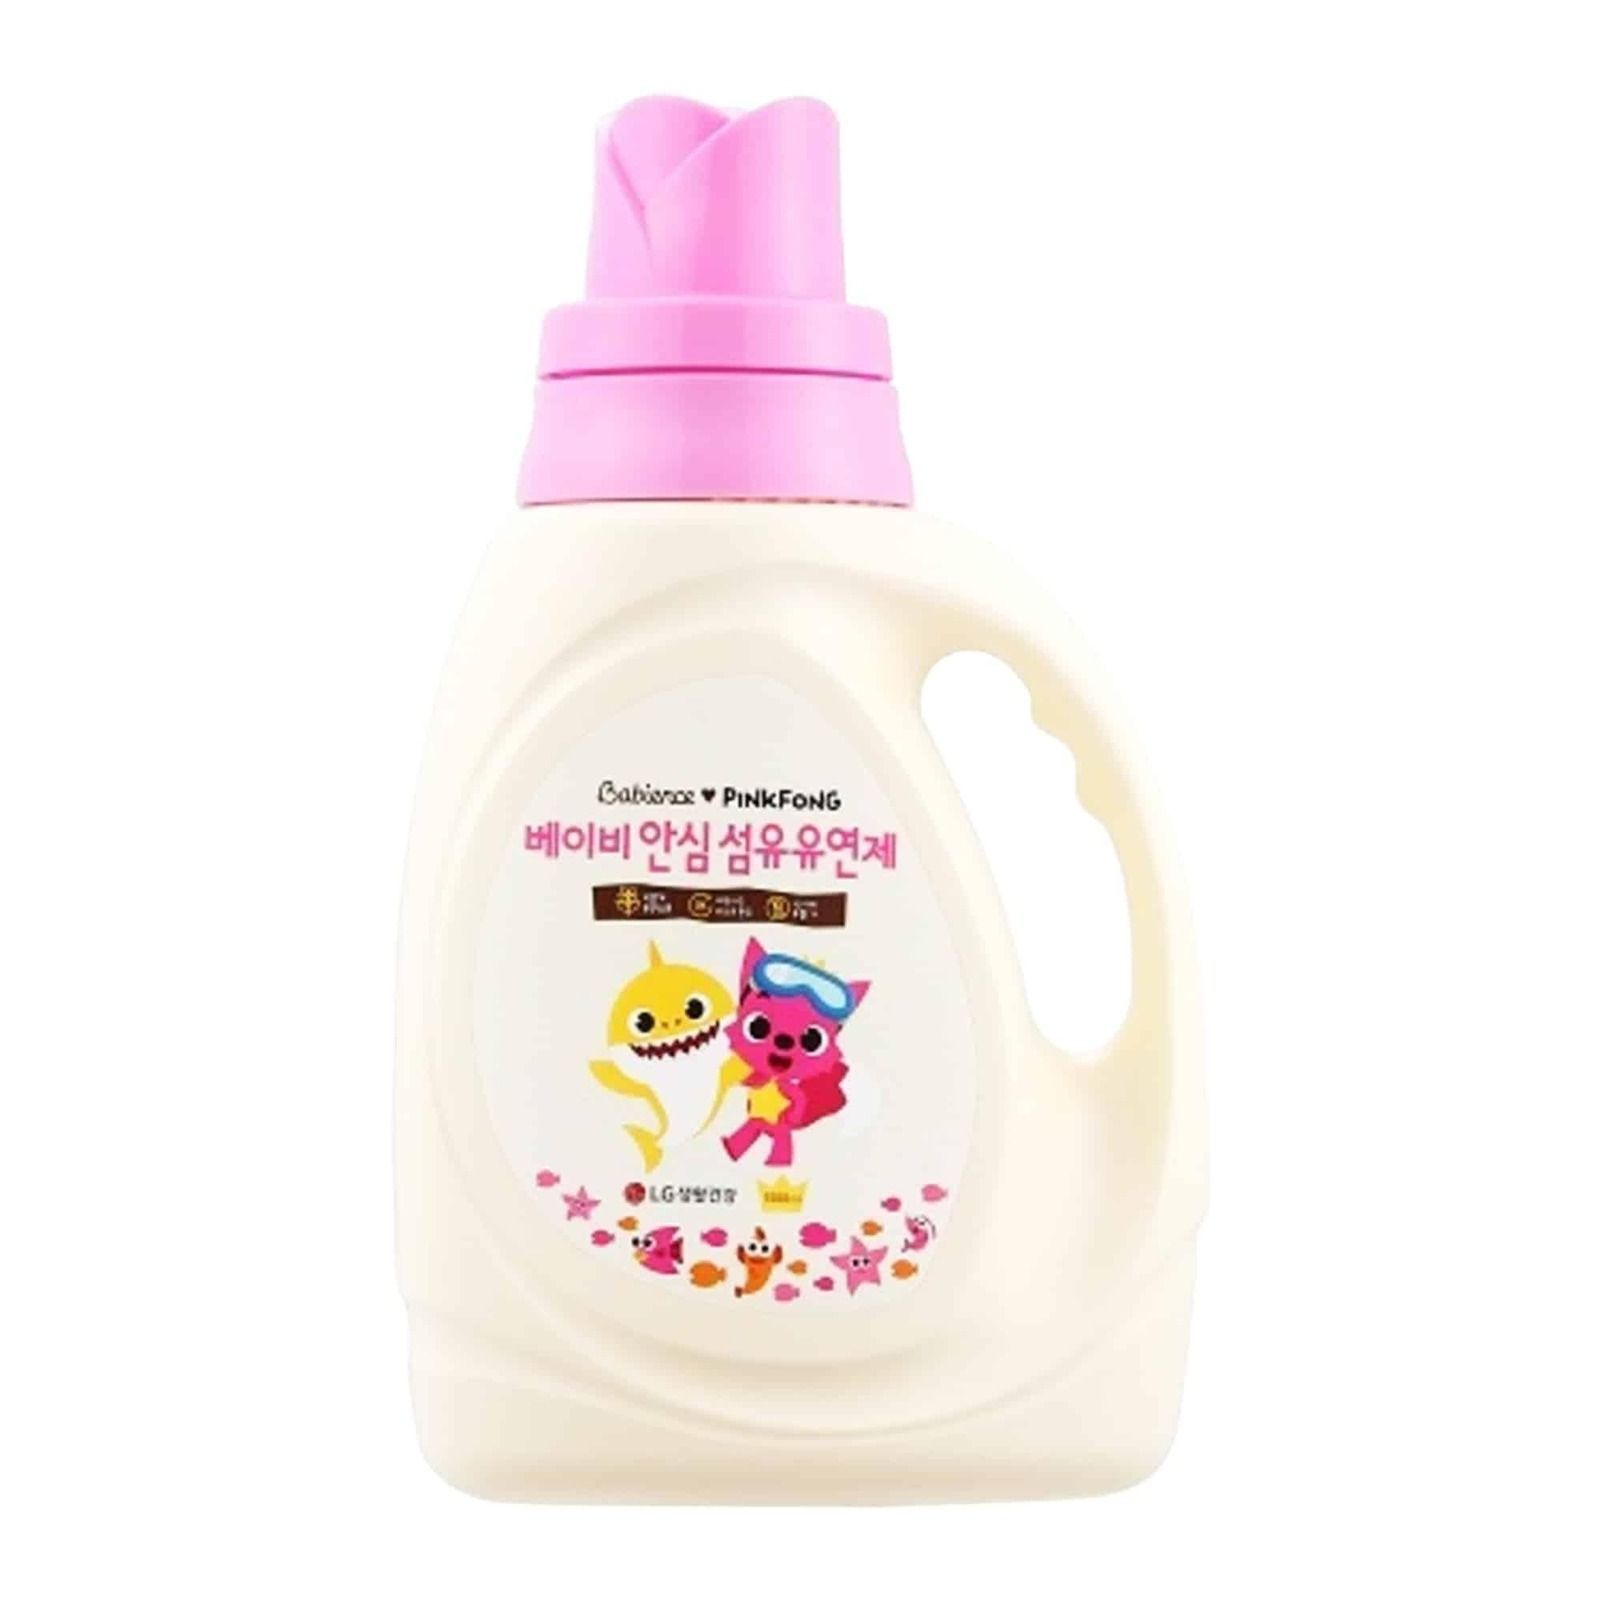 Babience Pinkfong Fabric Softener Container